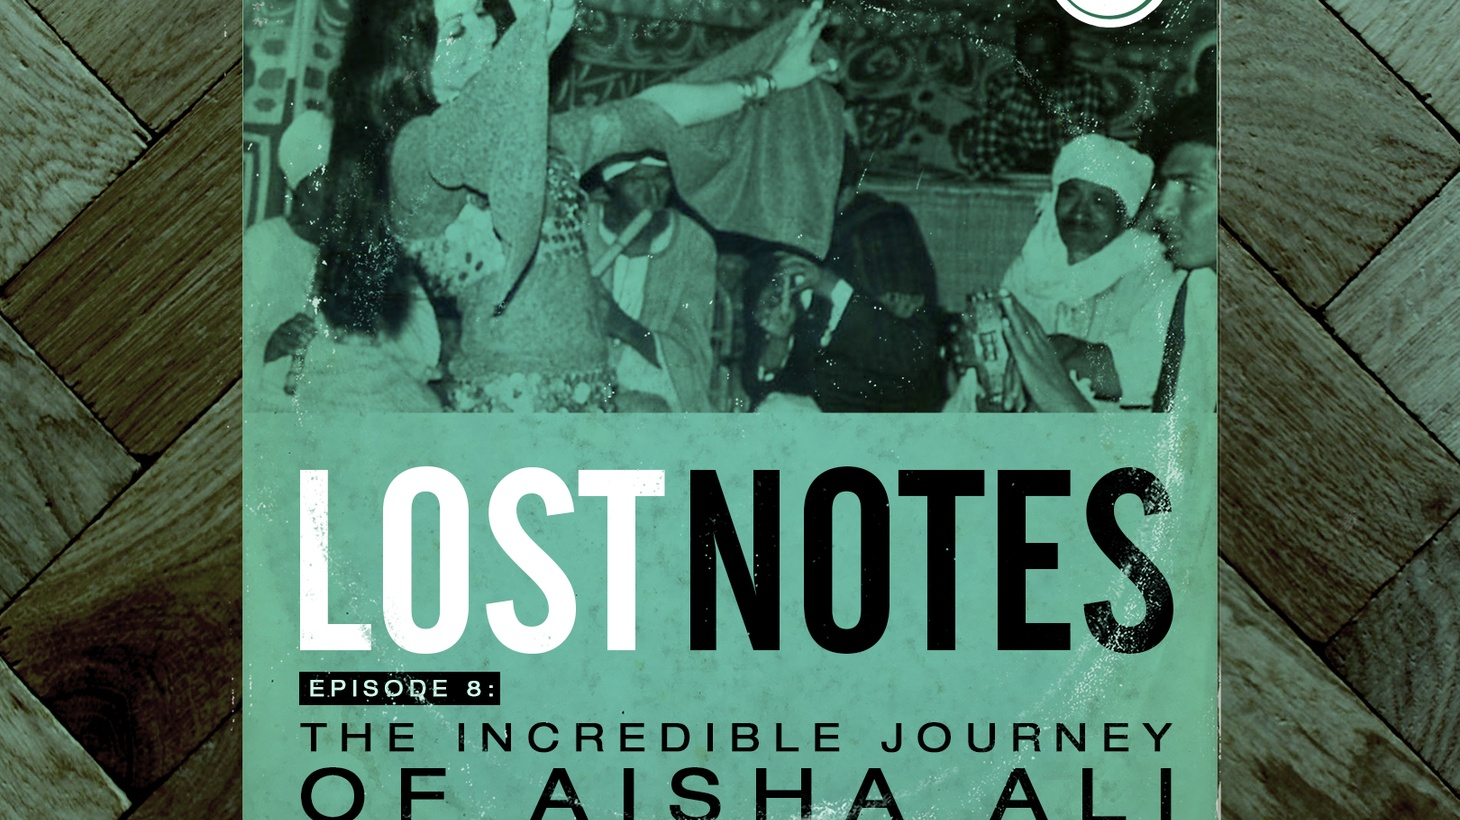 KCRW's Bob Carlson talks with Arshia Fatima Haq, who produced the final episode of the first season of Lost Notes, an anthology of the greatest music stories never told.